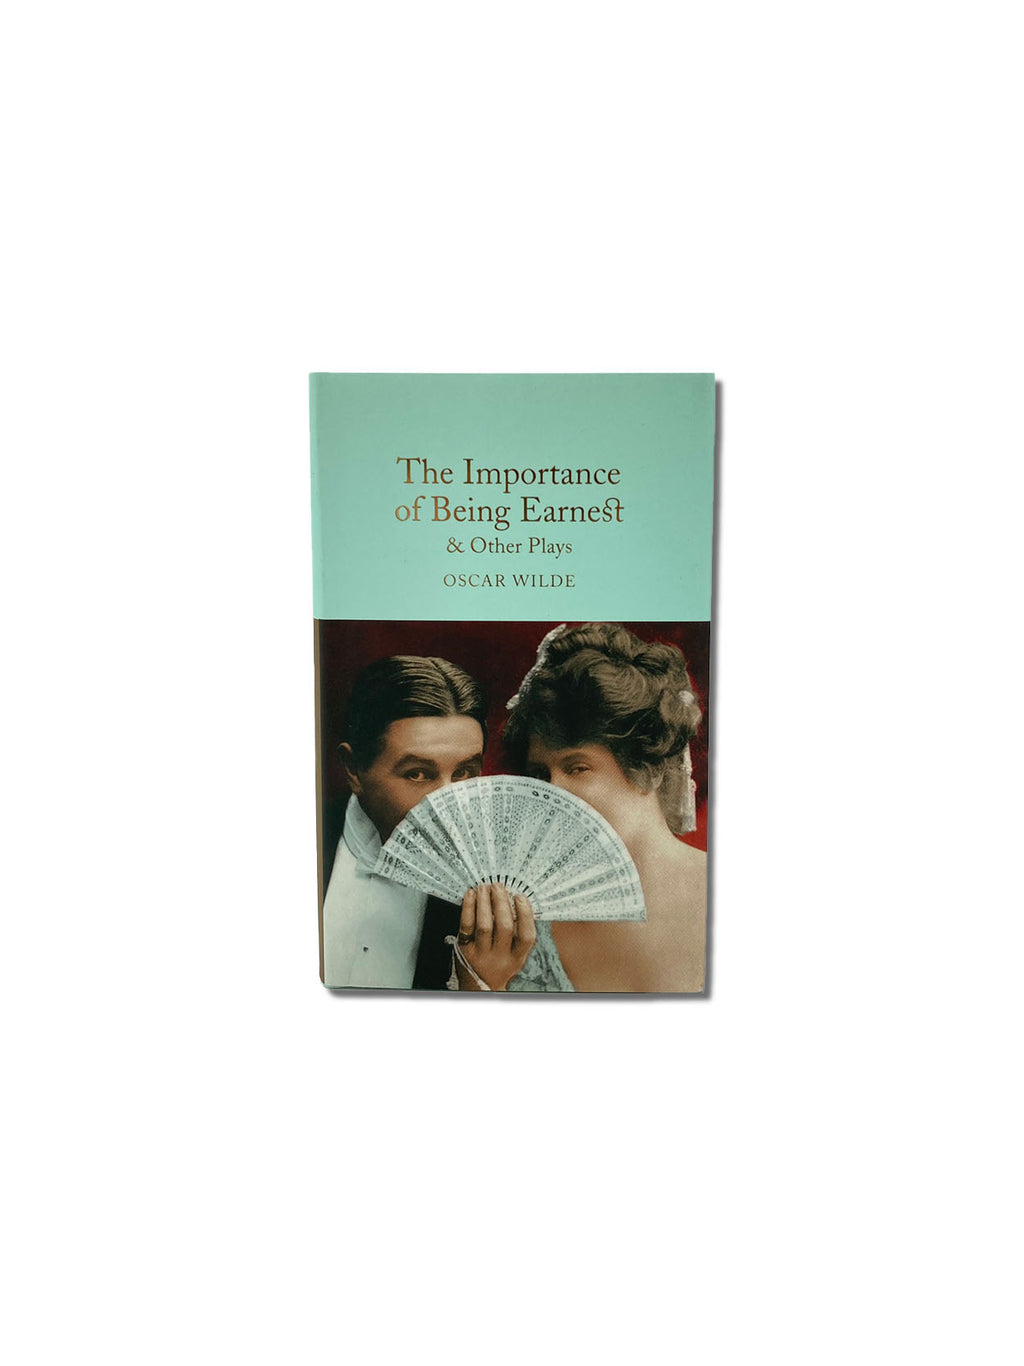 The Importance of Being Earnest & Other Plays - Macmillan Collector's Library